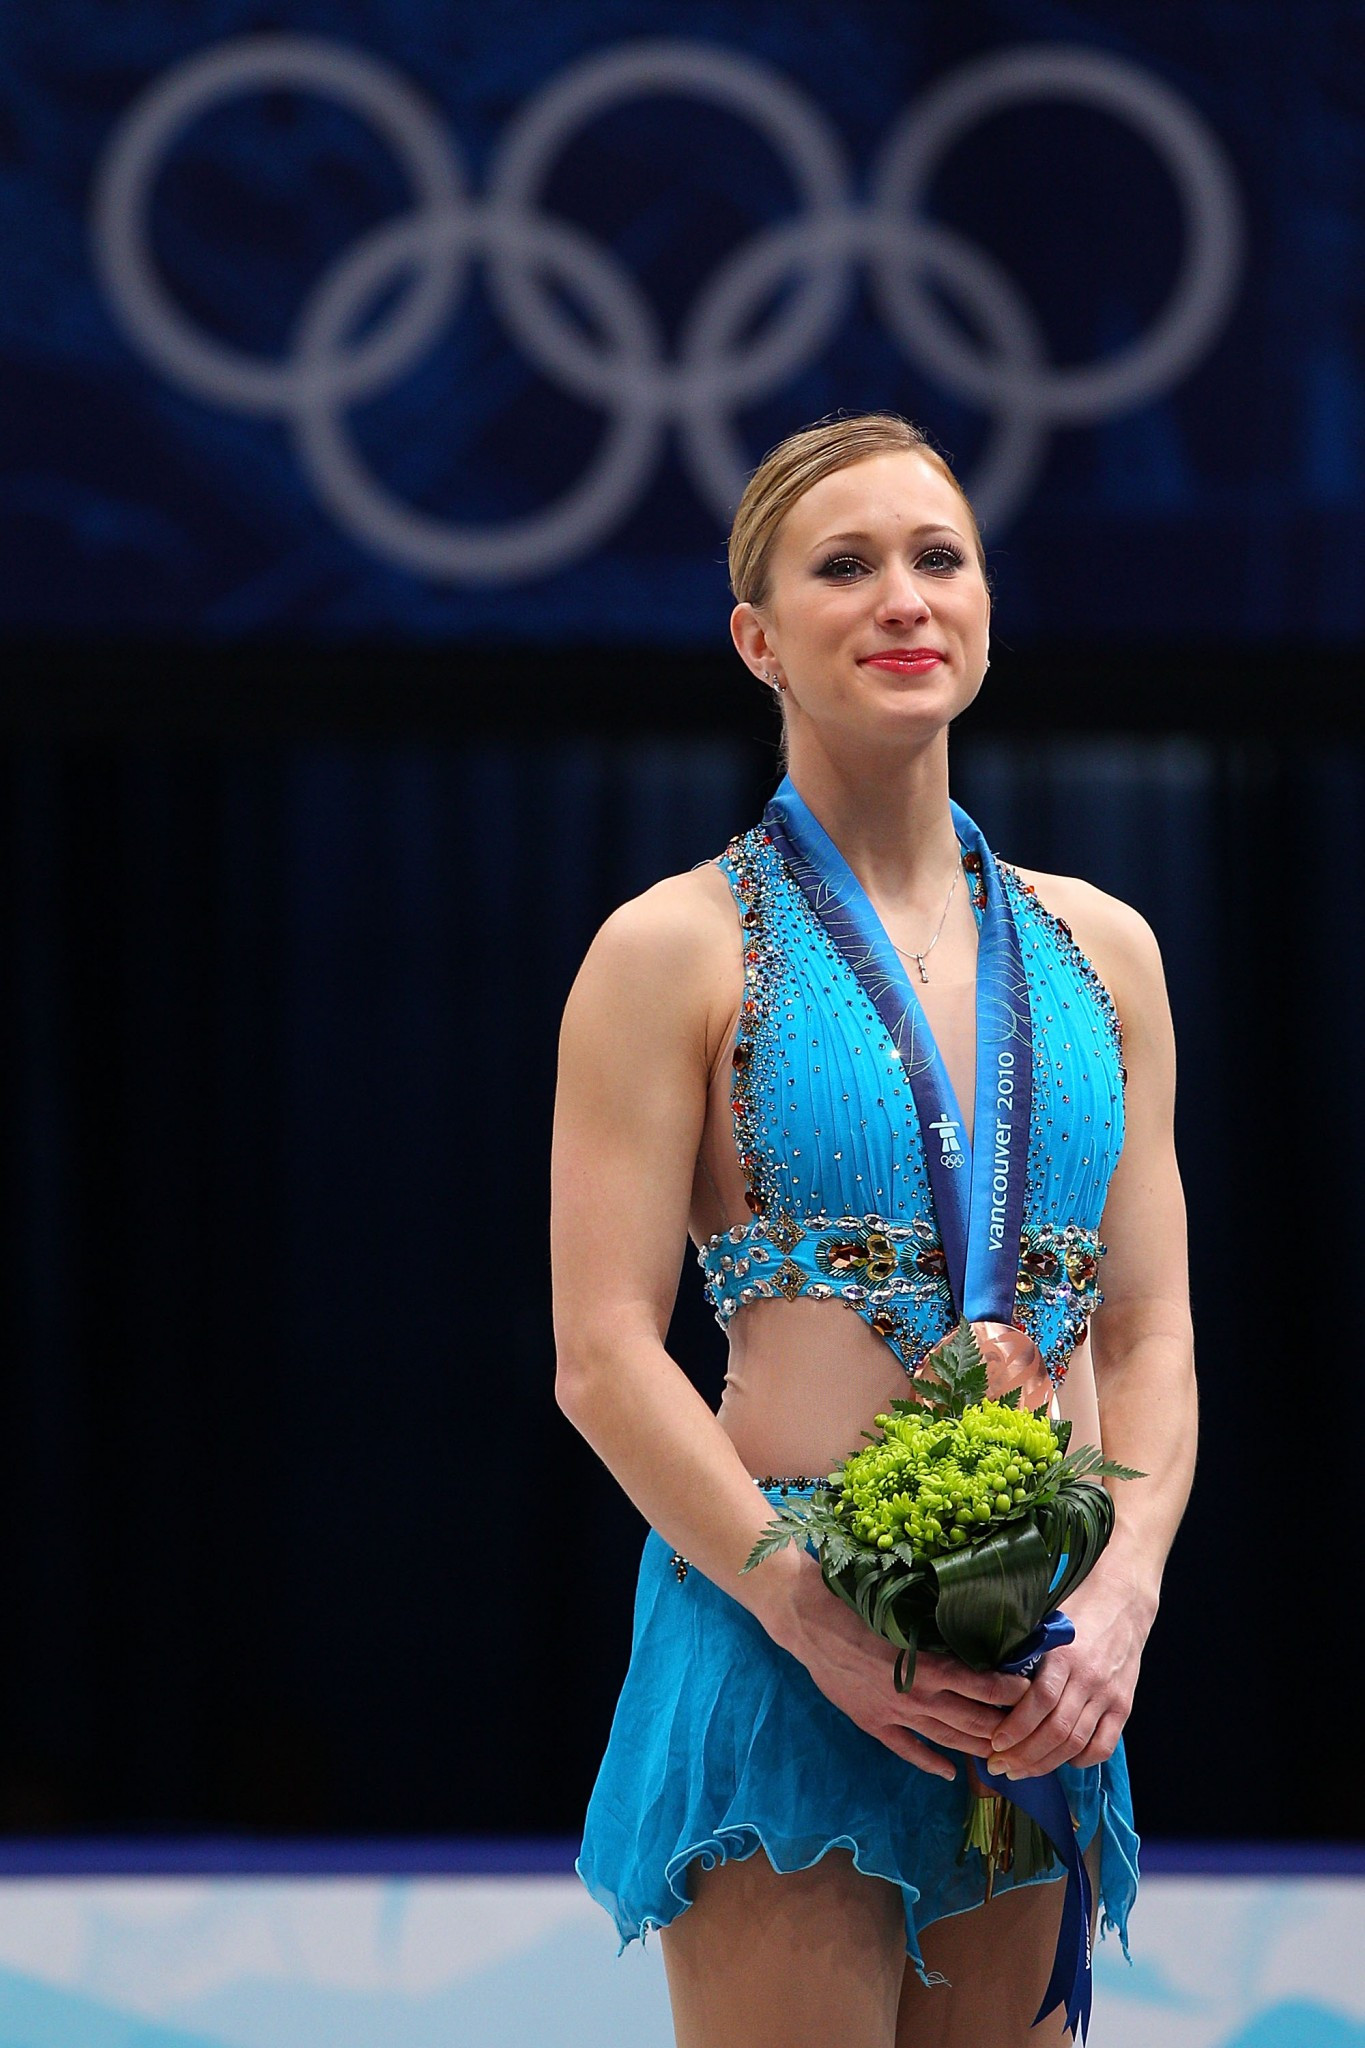 Joannie Rochette won an emotional bronze medal at Vancouver 2010 after her mother passed away  ©Getty Images